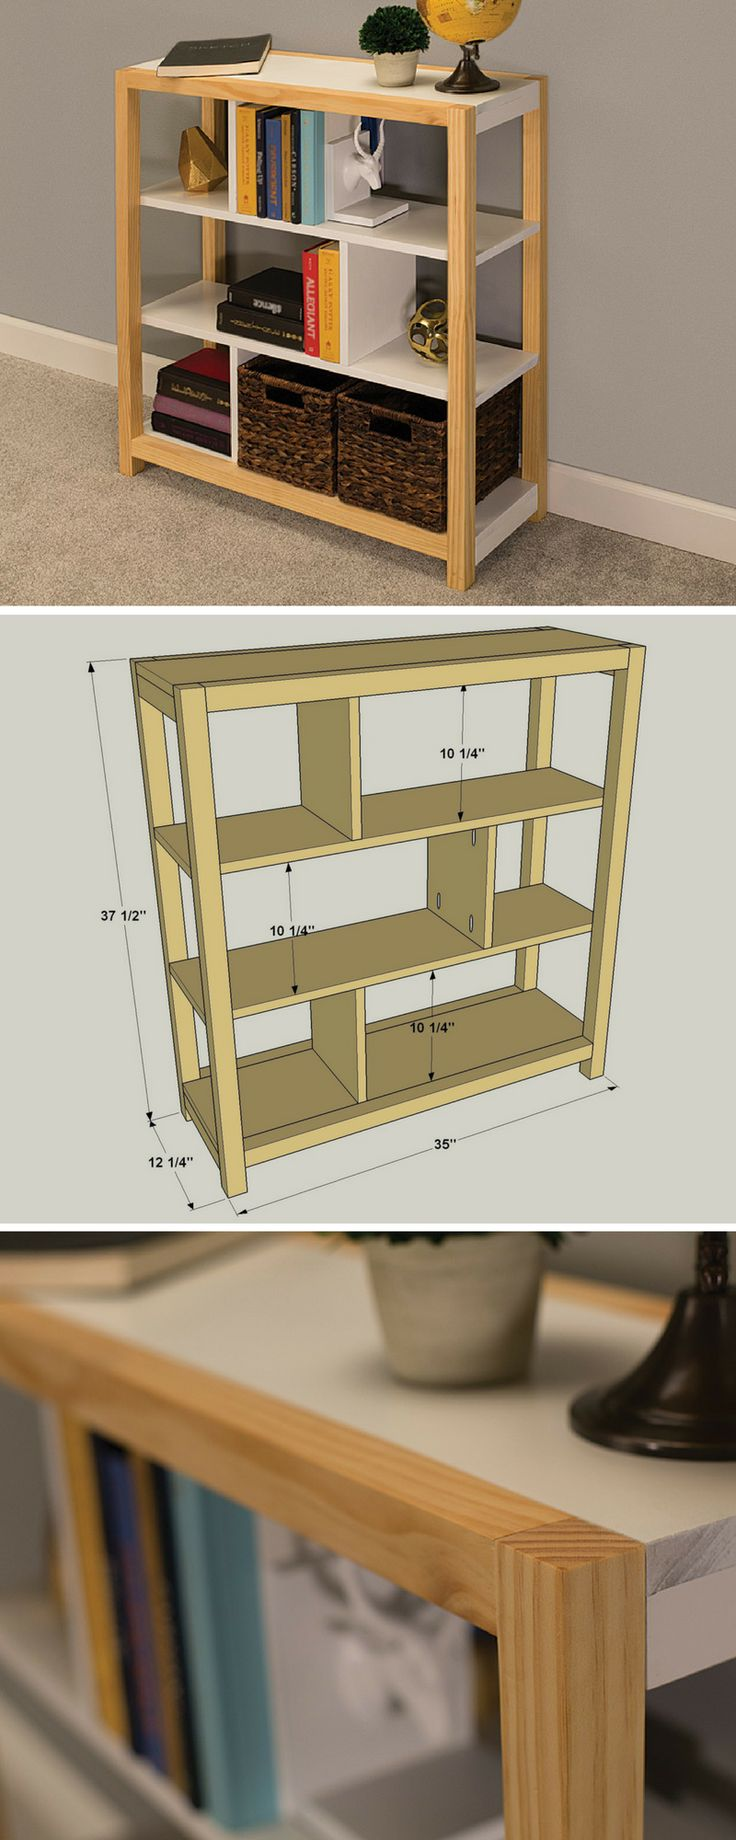 The best images about Home Office on Pinterest Storage bins